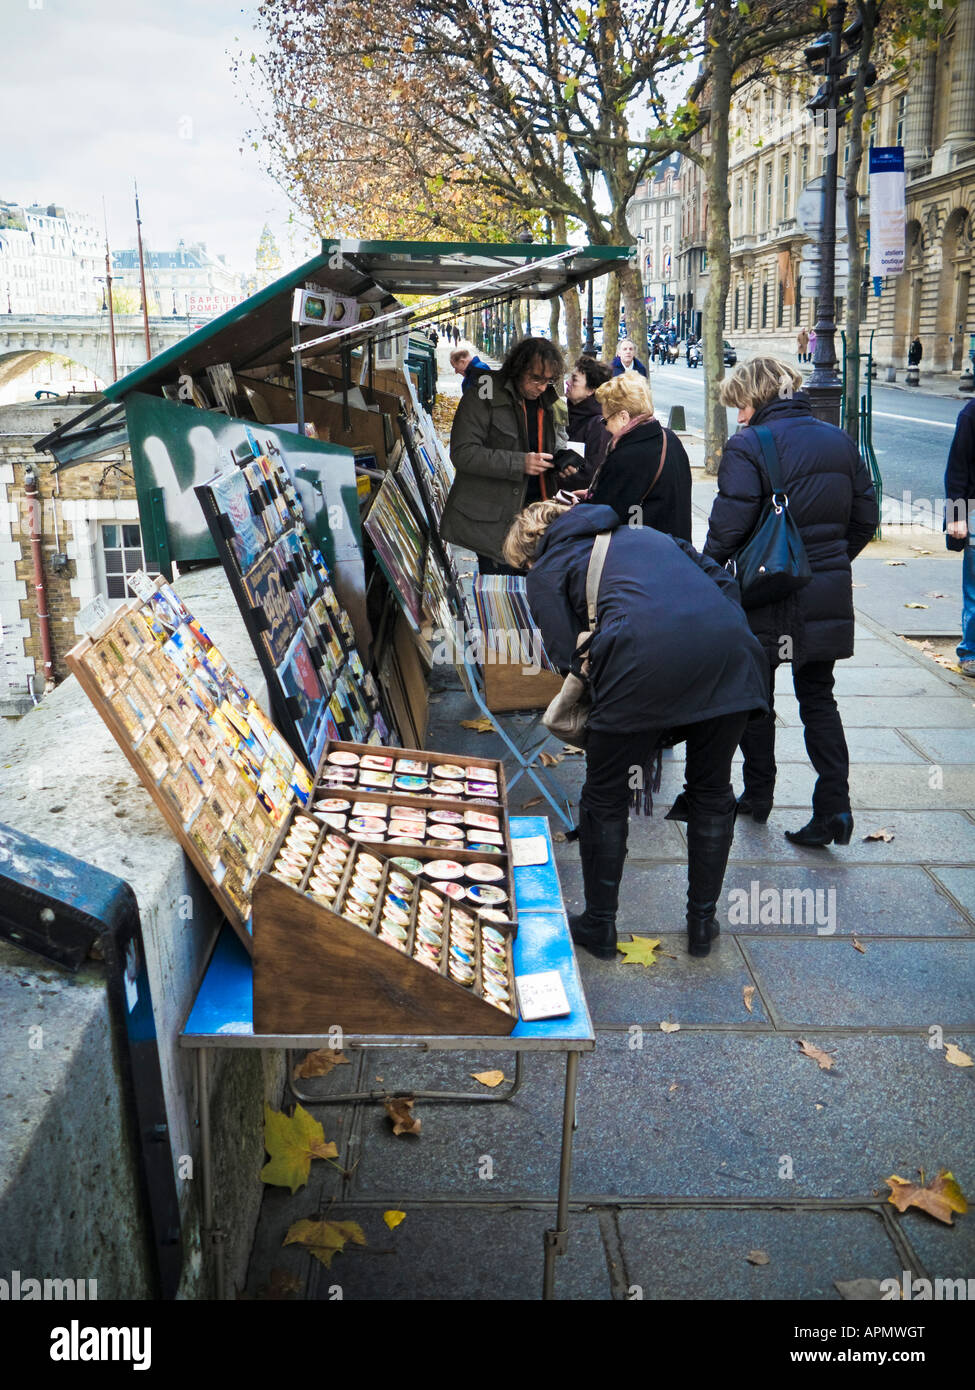 Open air stall selling art and books on the Left Bank in Paris France Europe - Stock Image